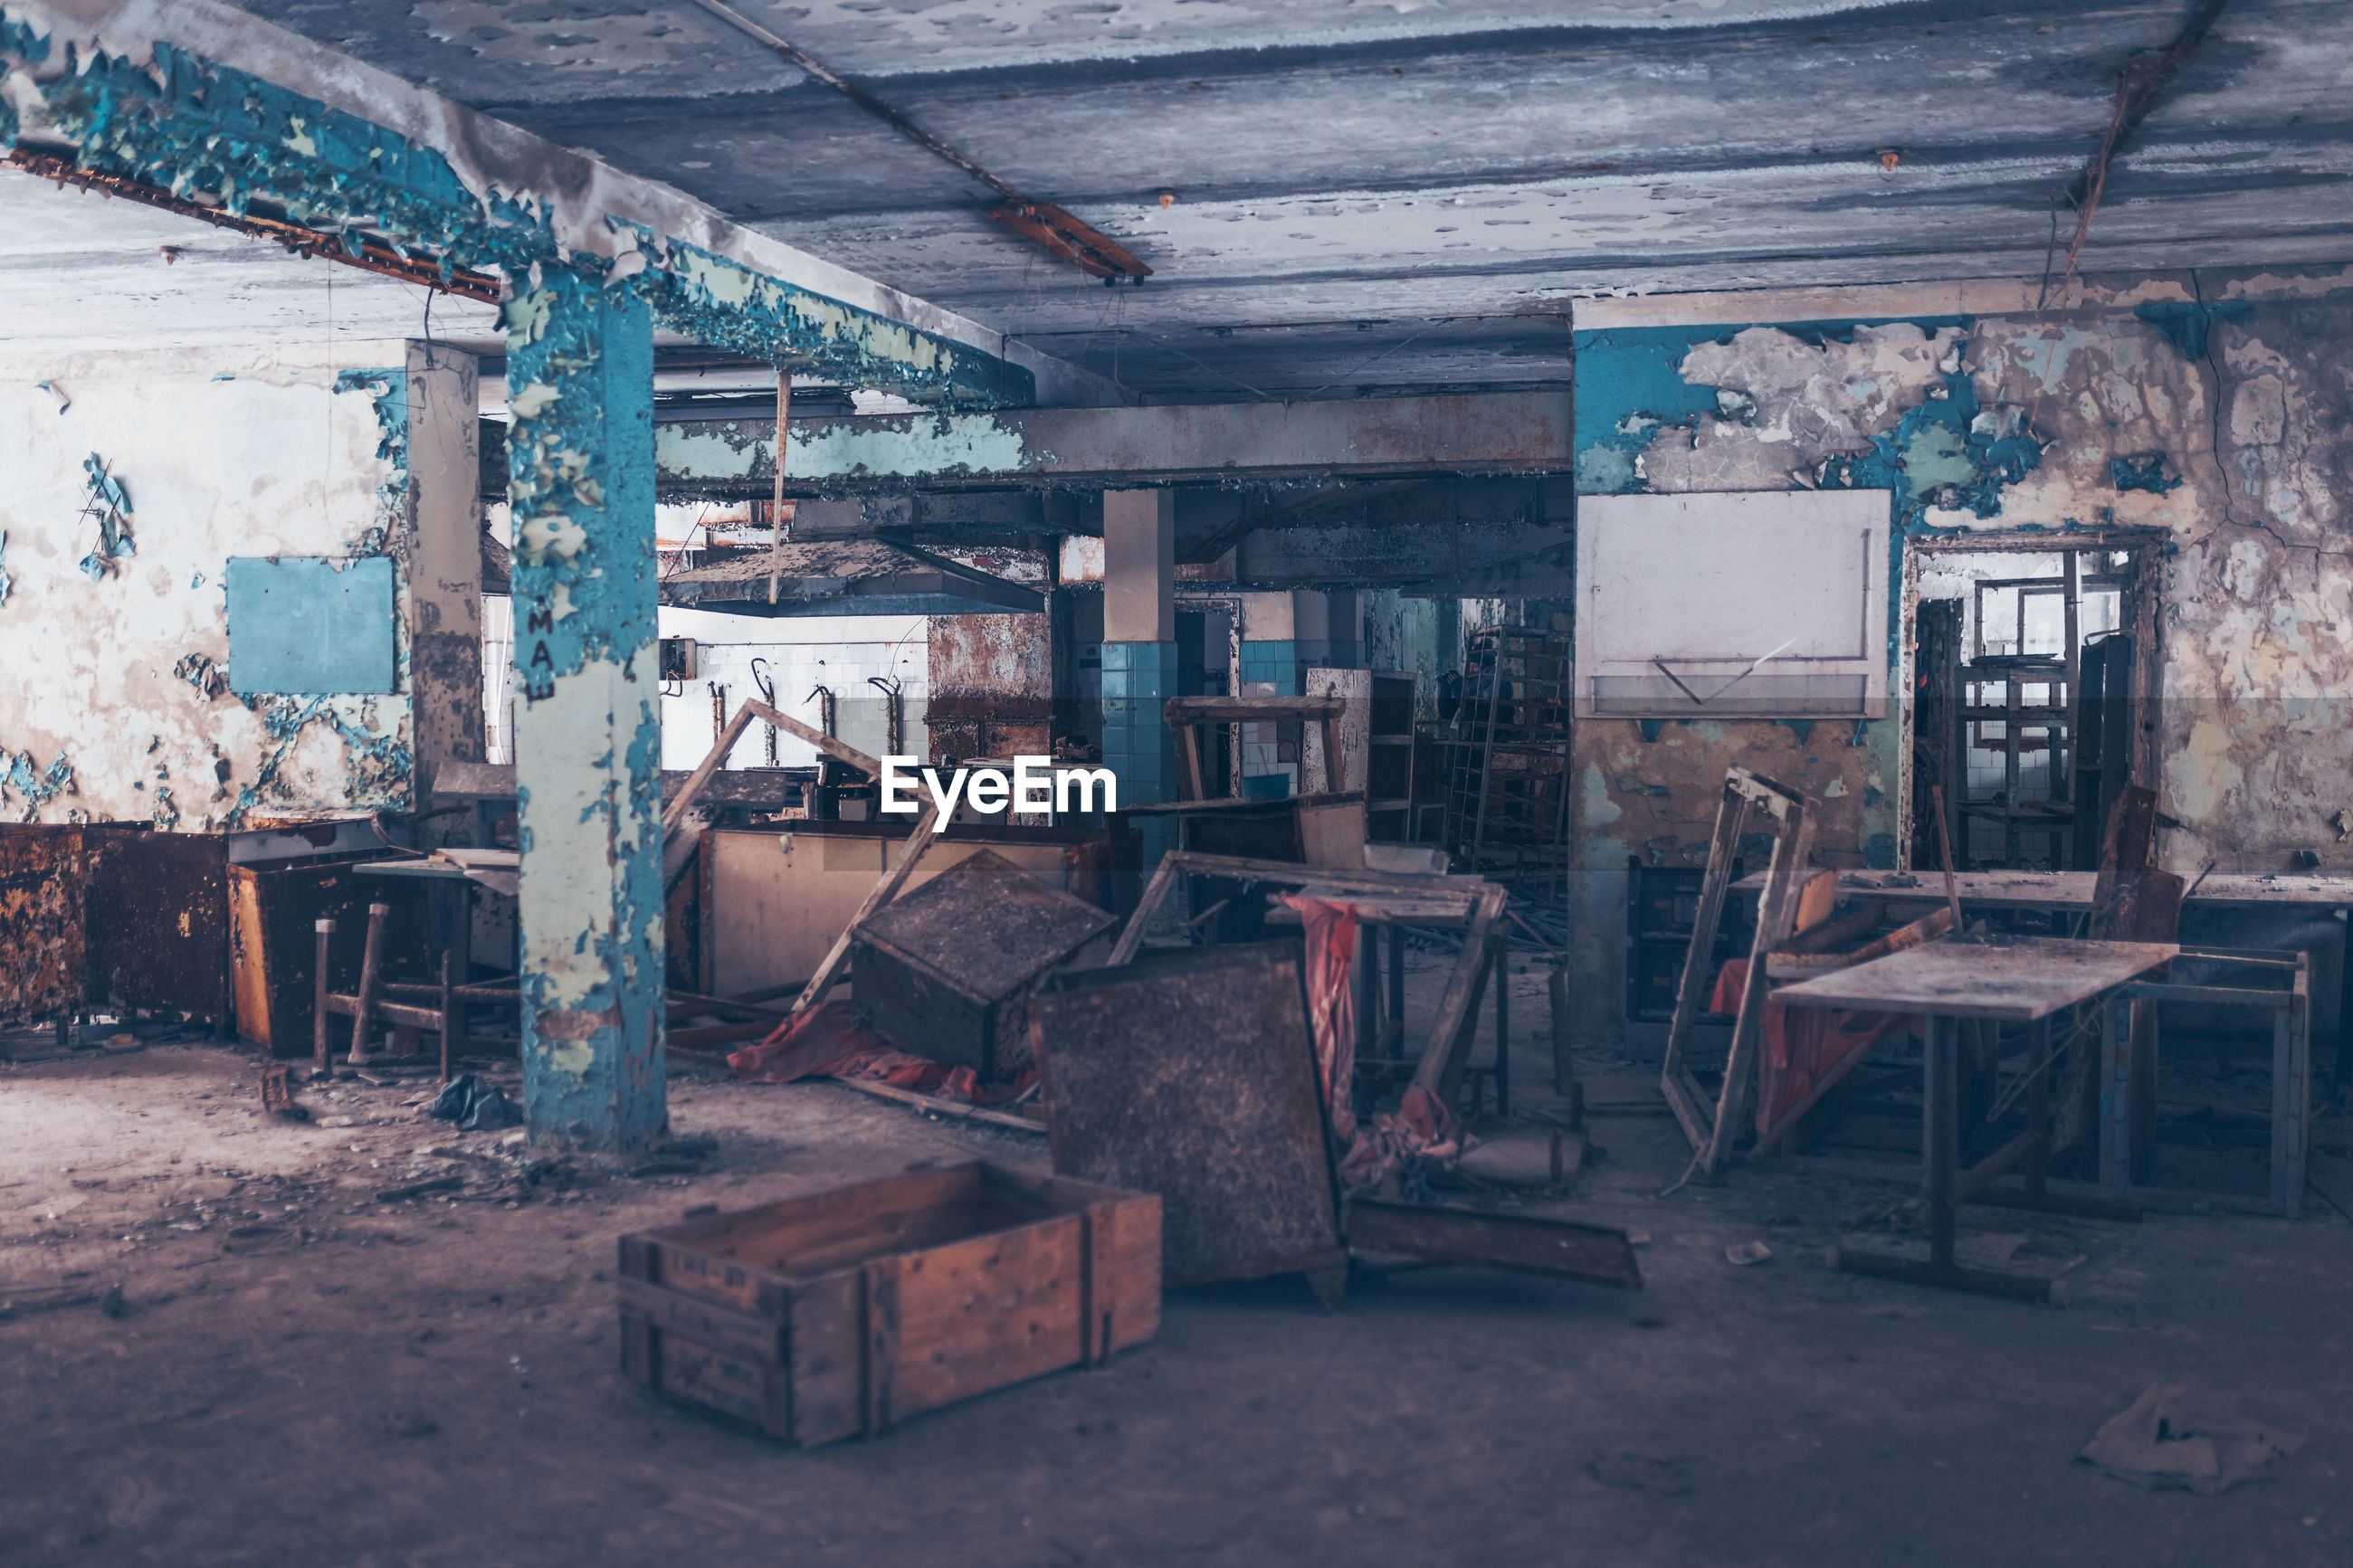 Interior of old abandoned built structure